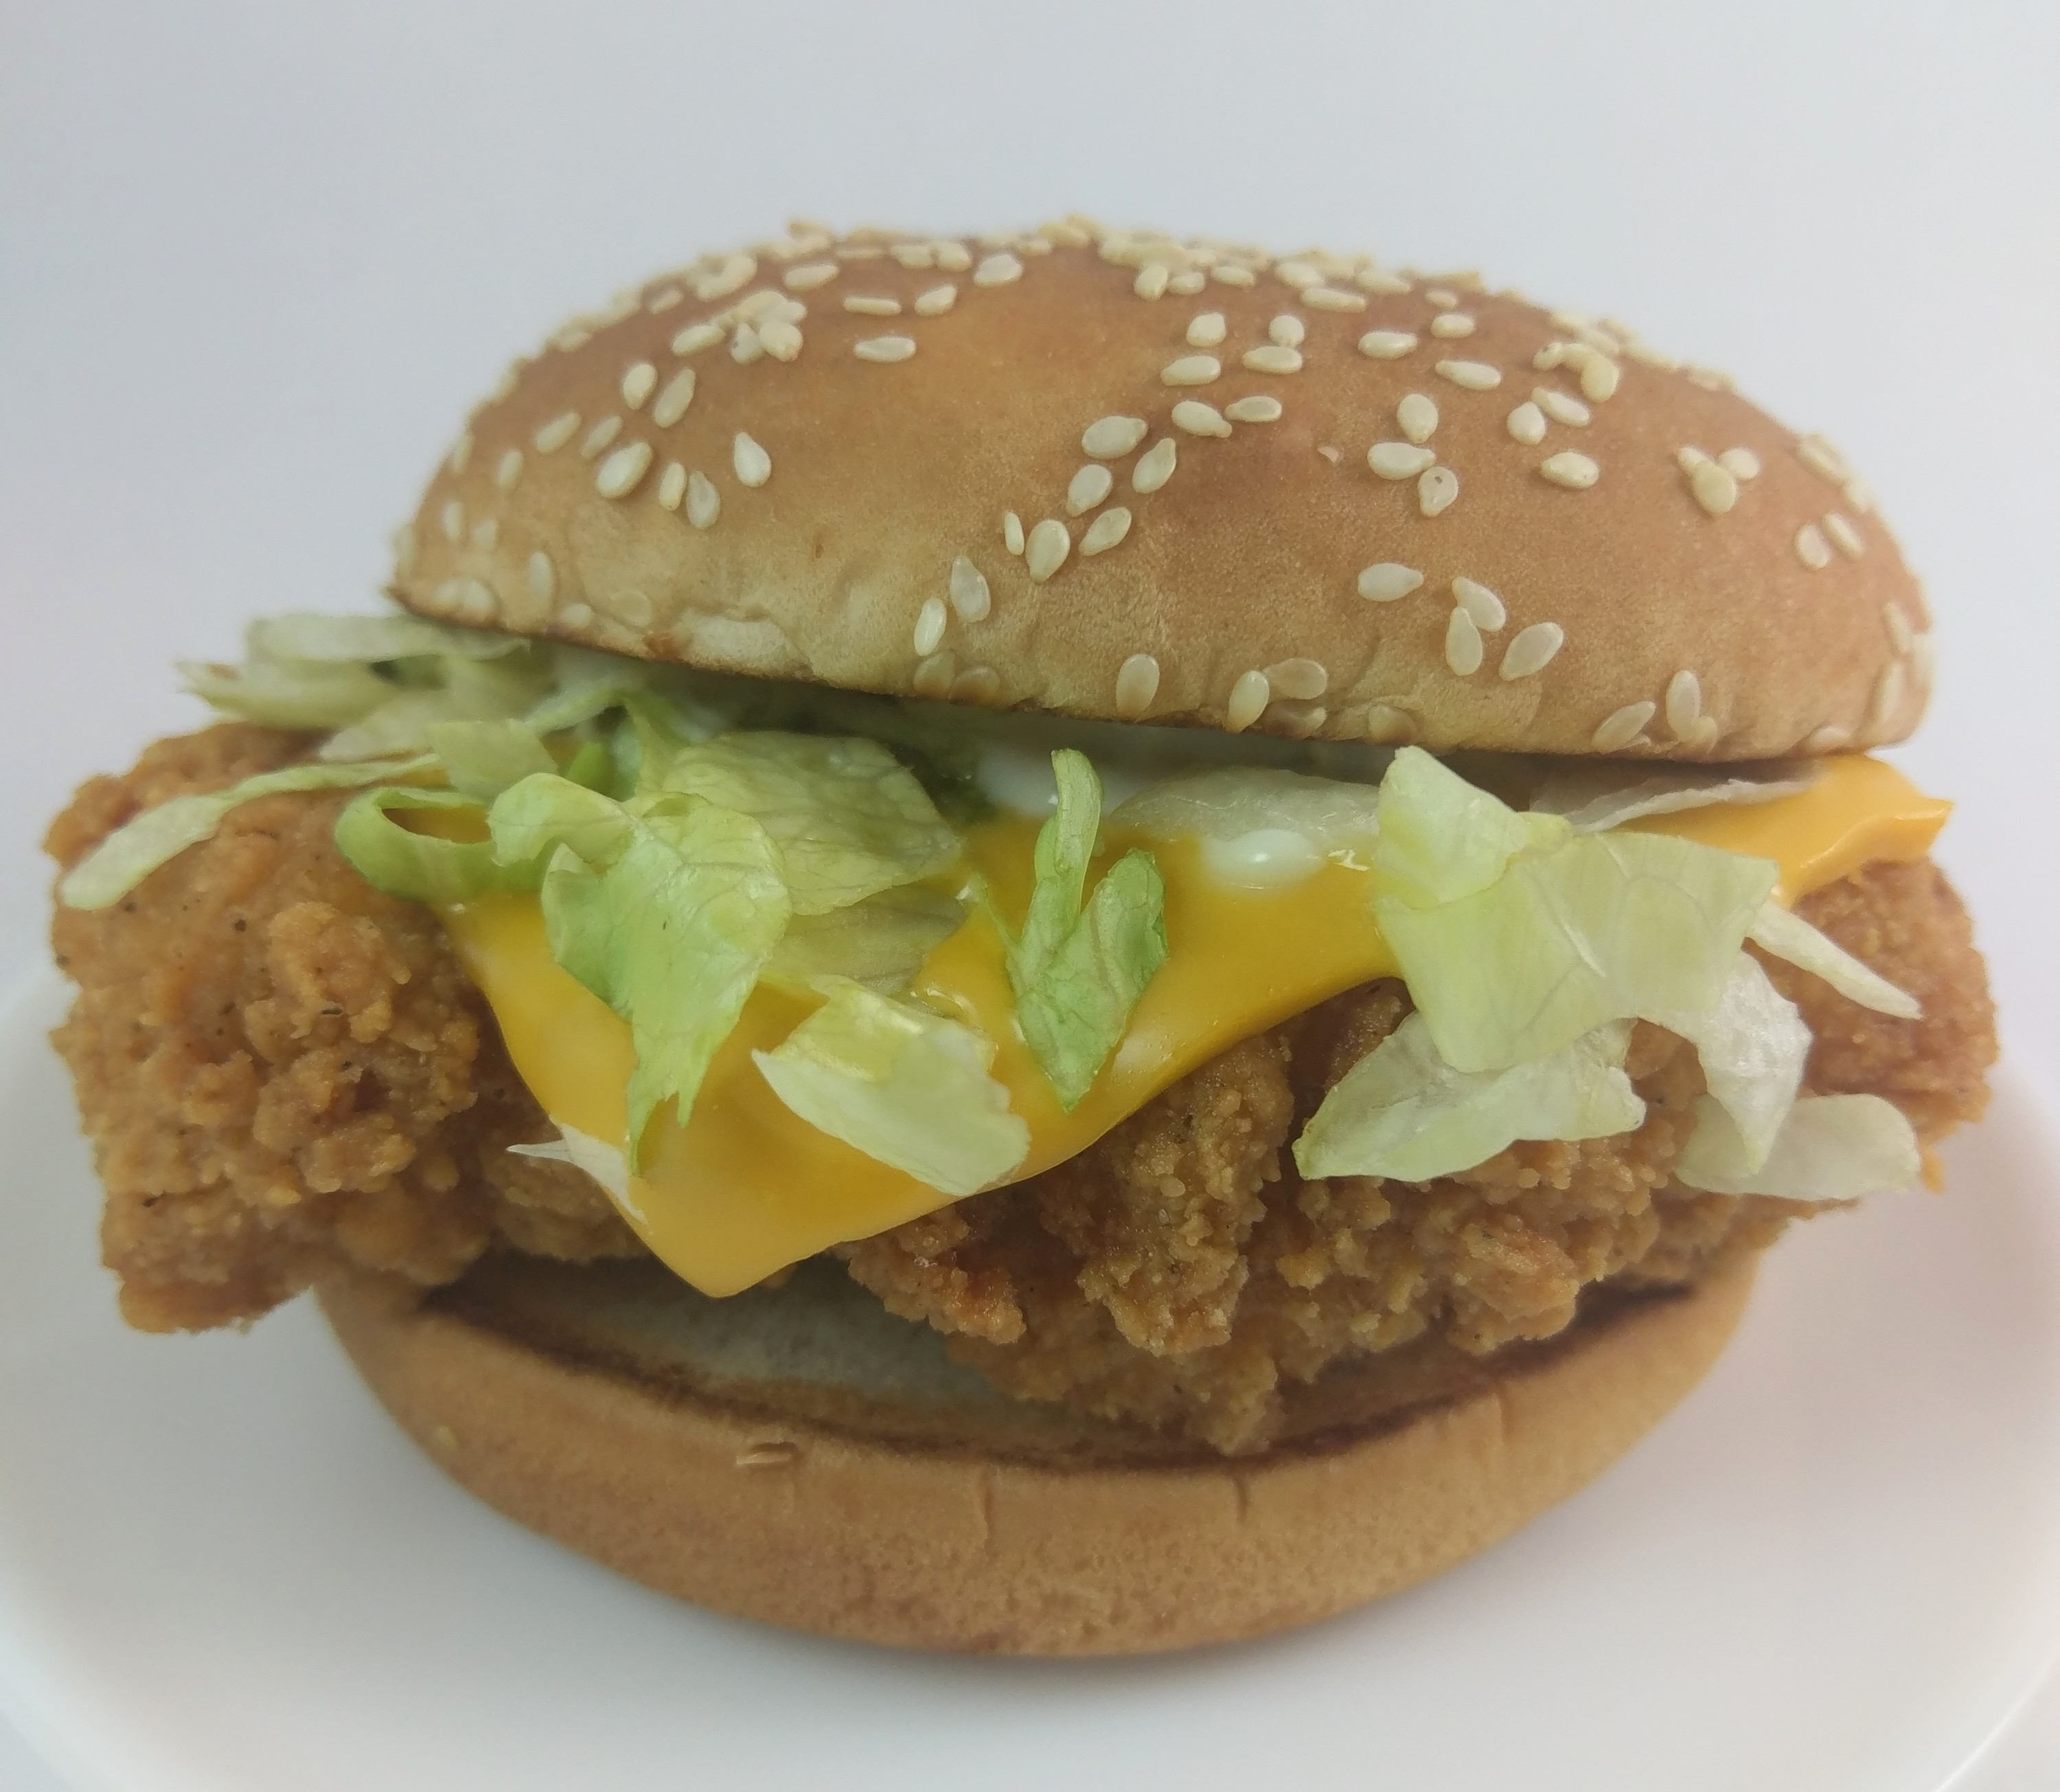 McSpicy with cheese